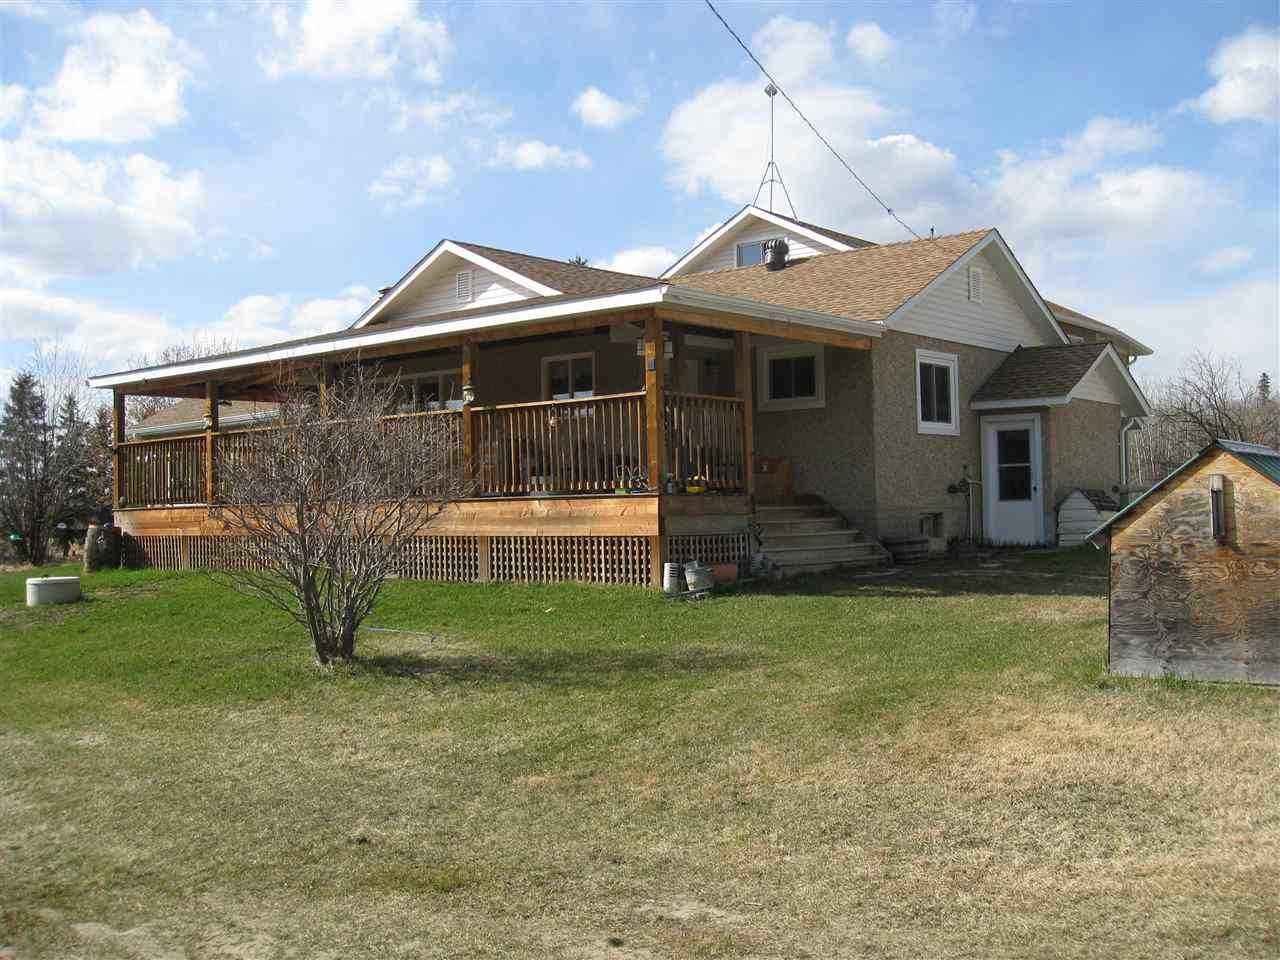 Main Photo: 2418 Twp Rd 562: Rural Lac Ste. Anne County House for sale : MLS®# E4153813